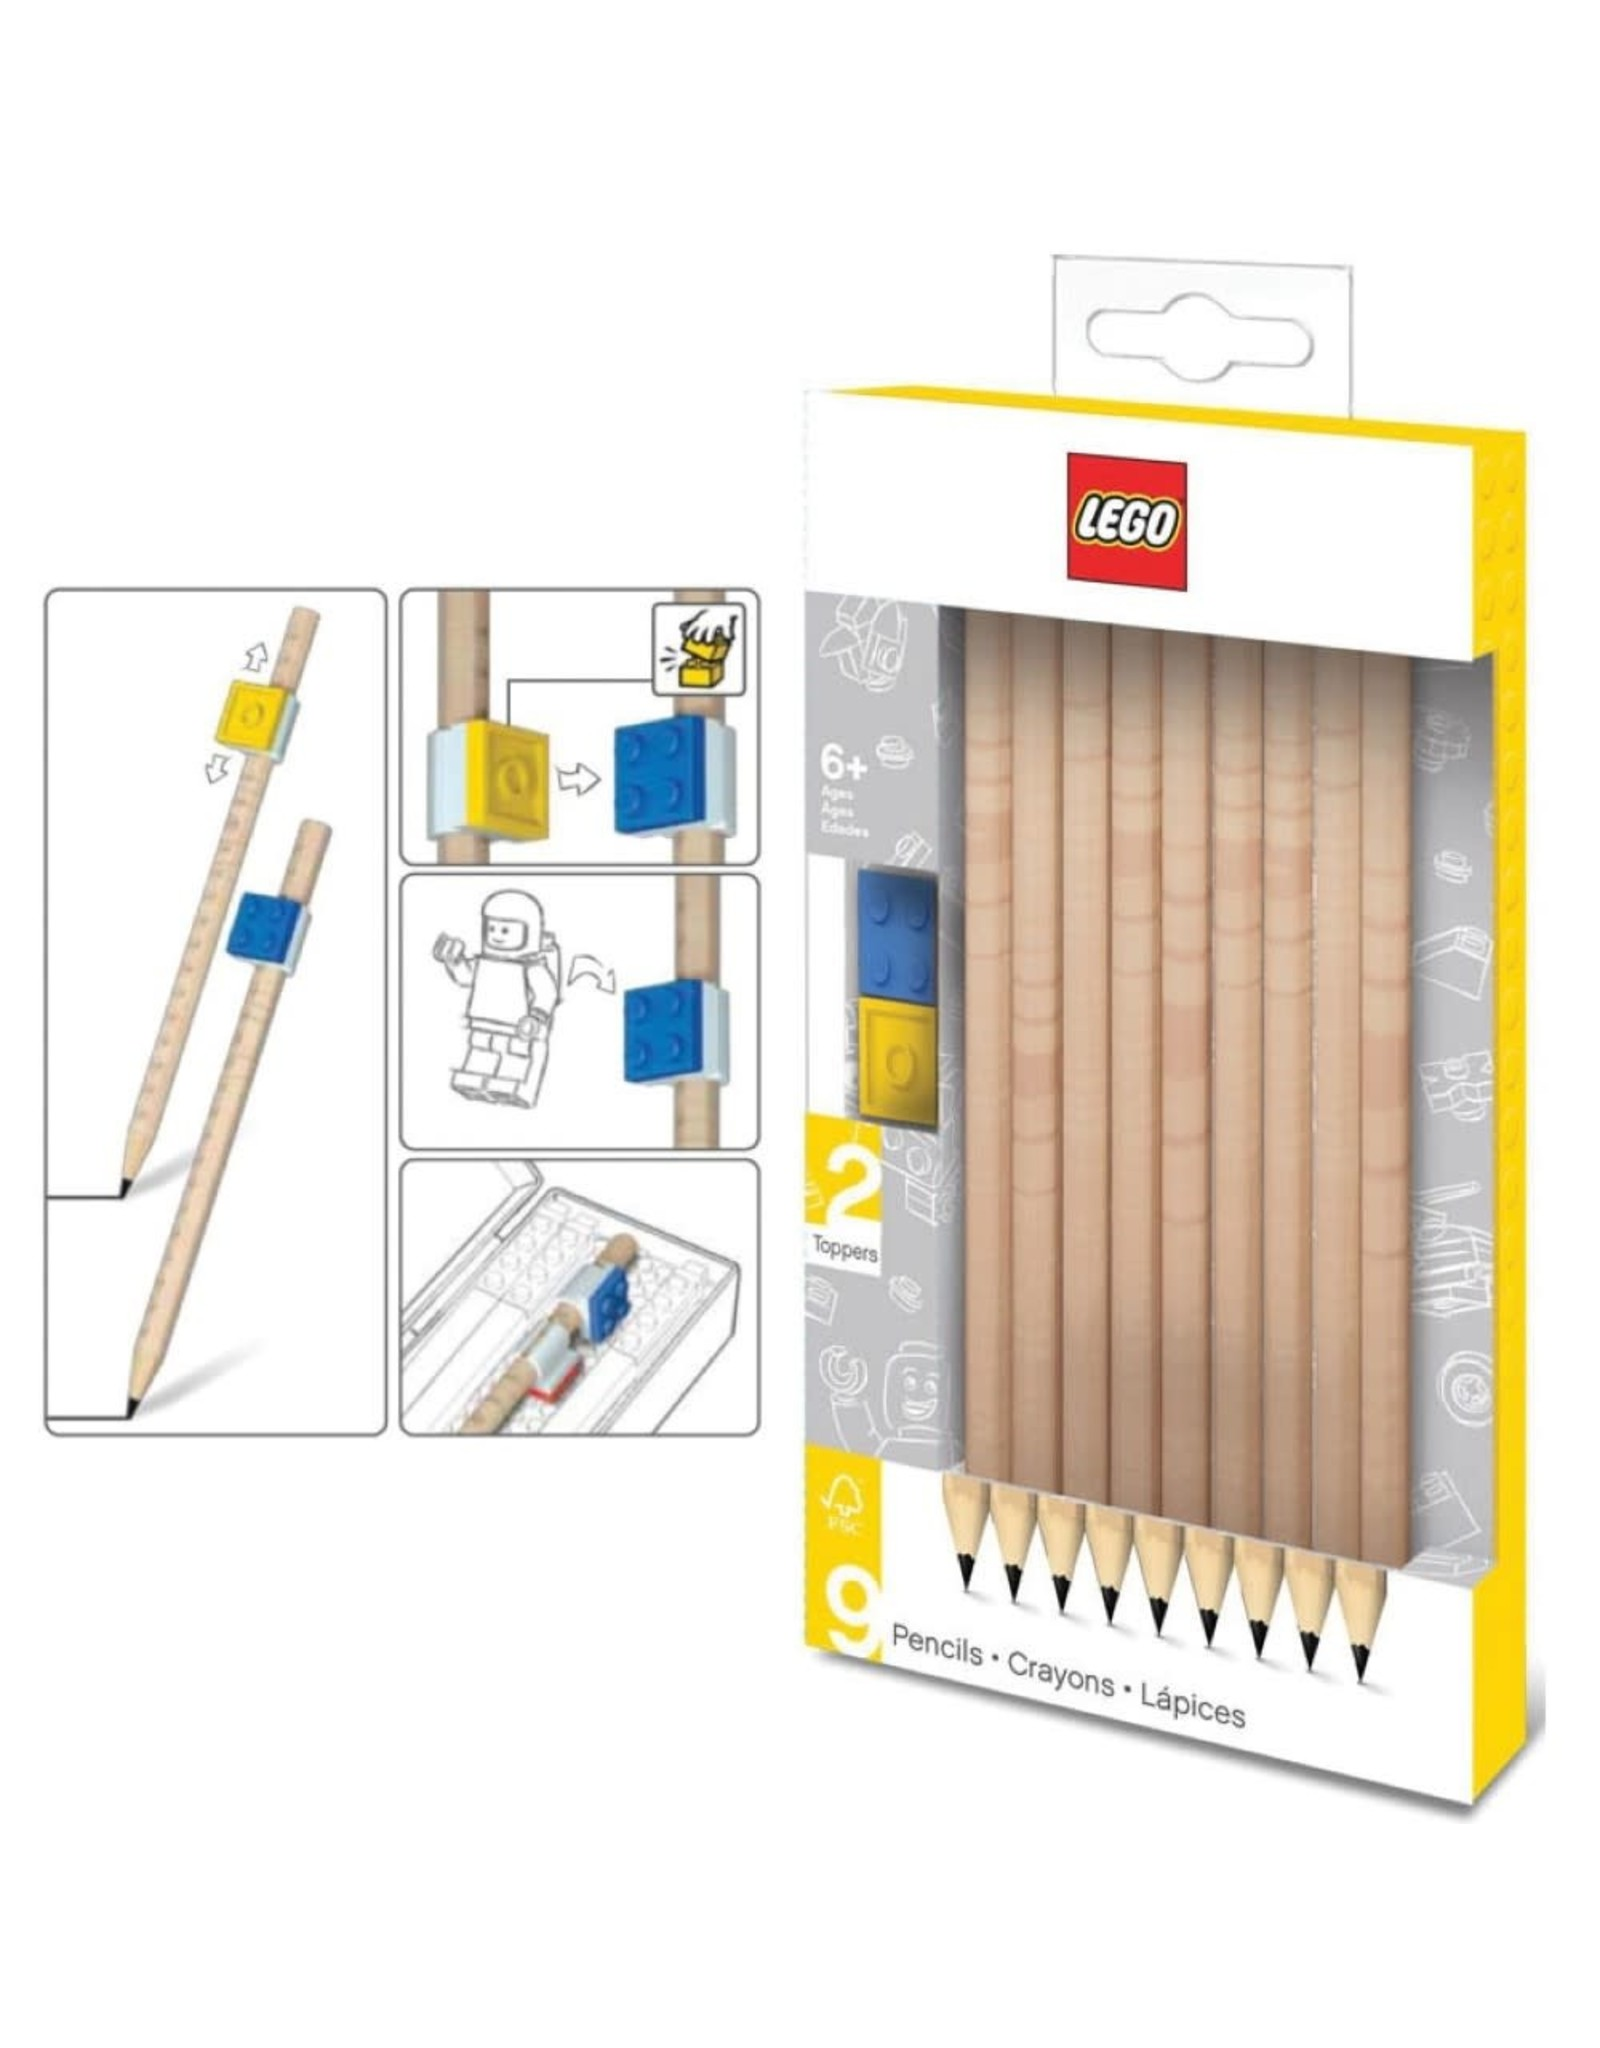 LEGO Graphite Pencils With Toppers - 9 pcs